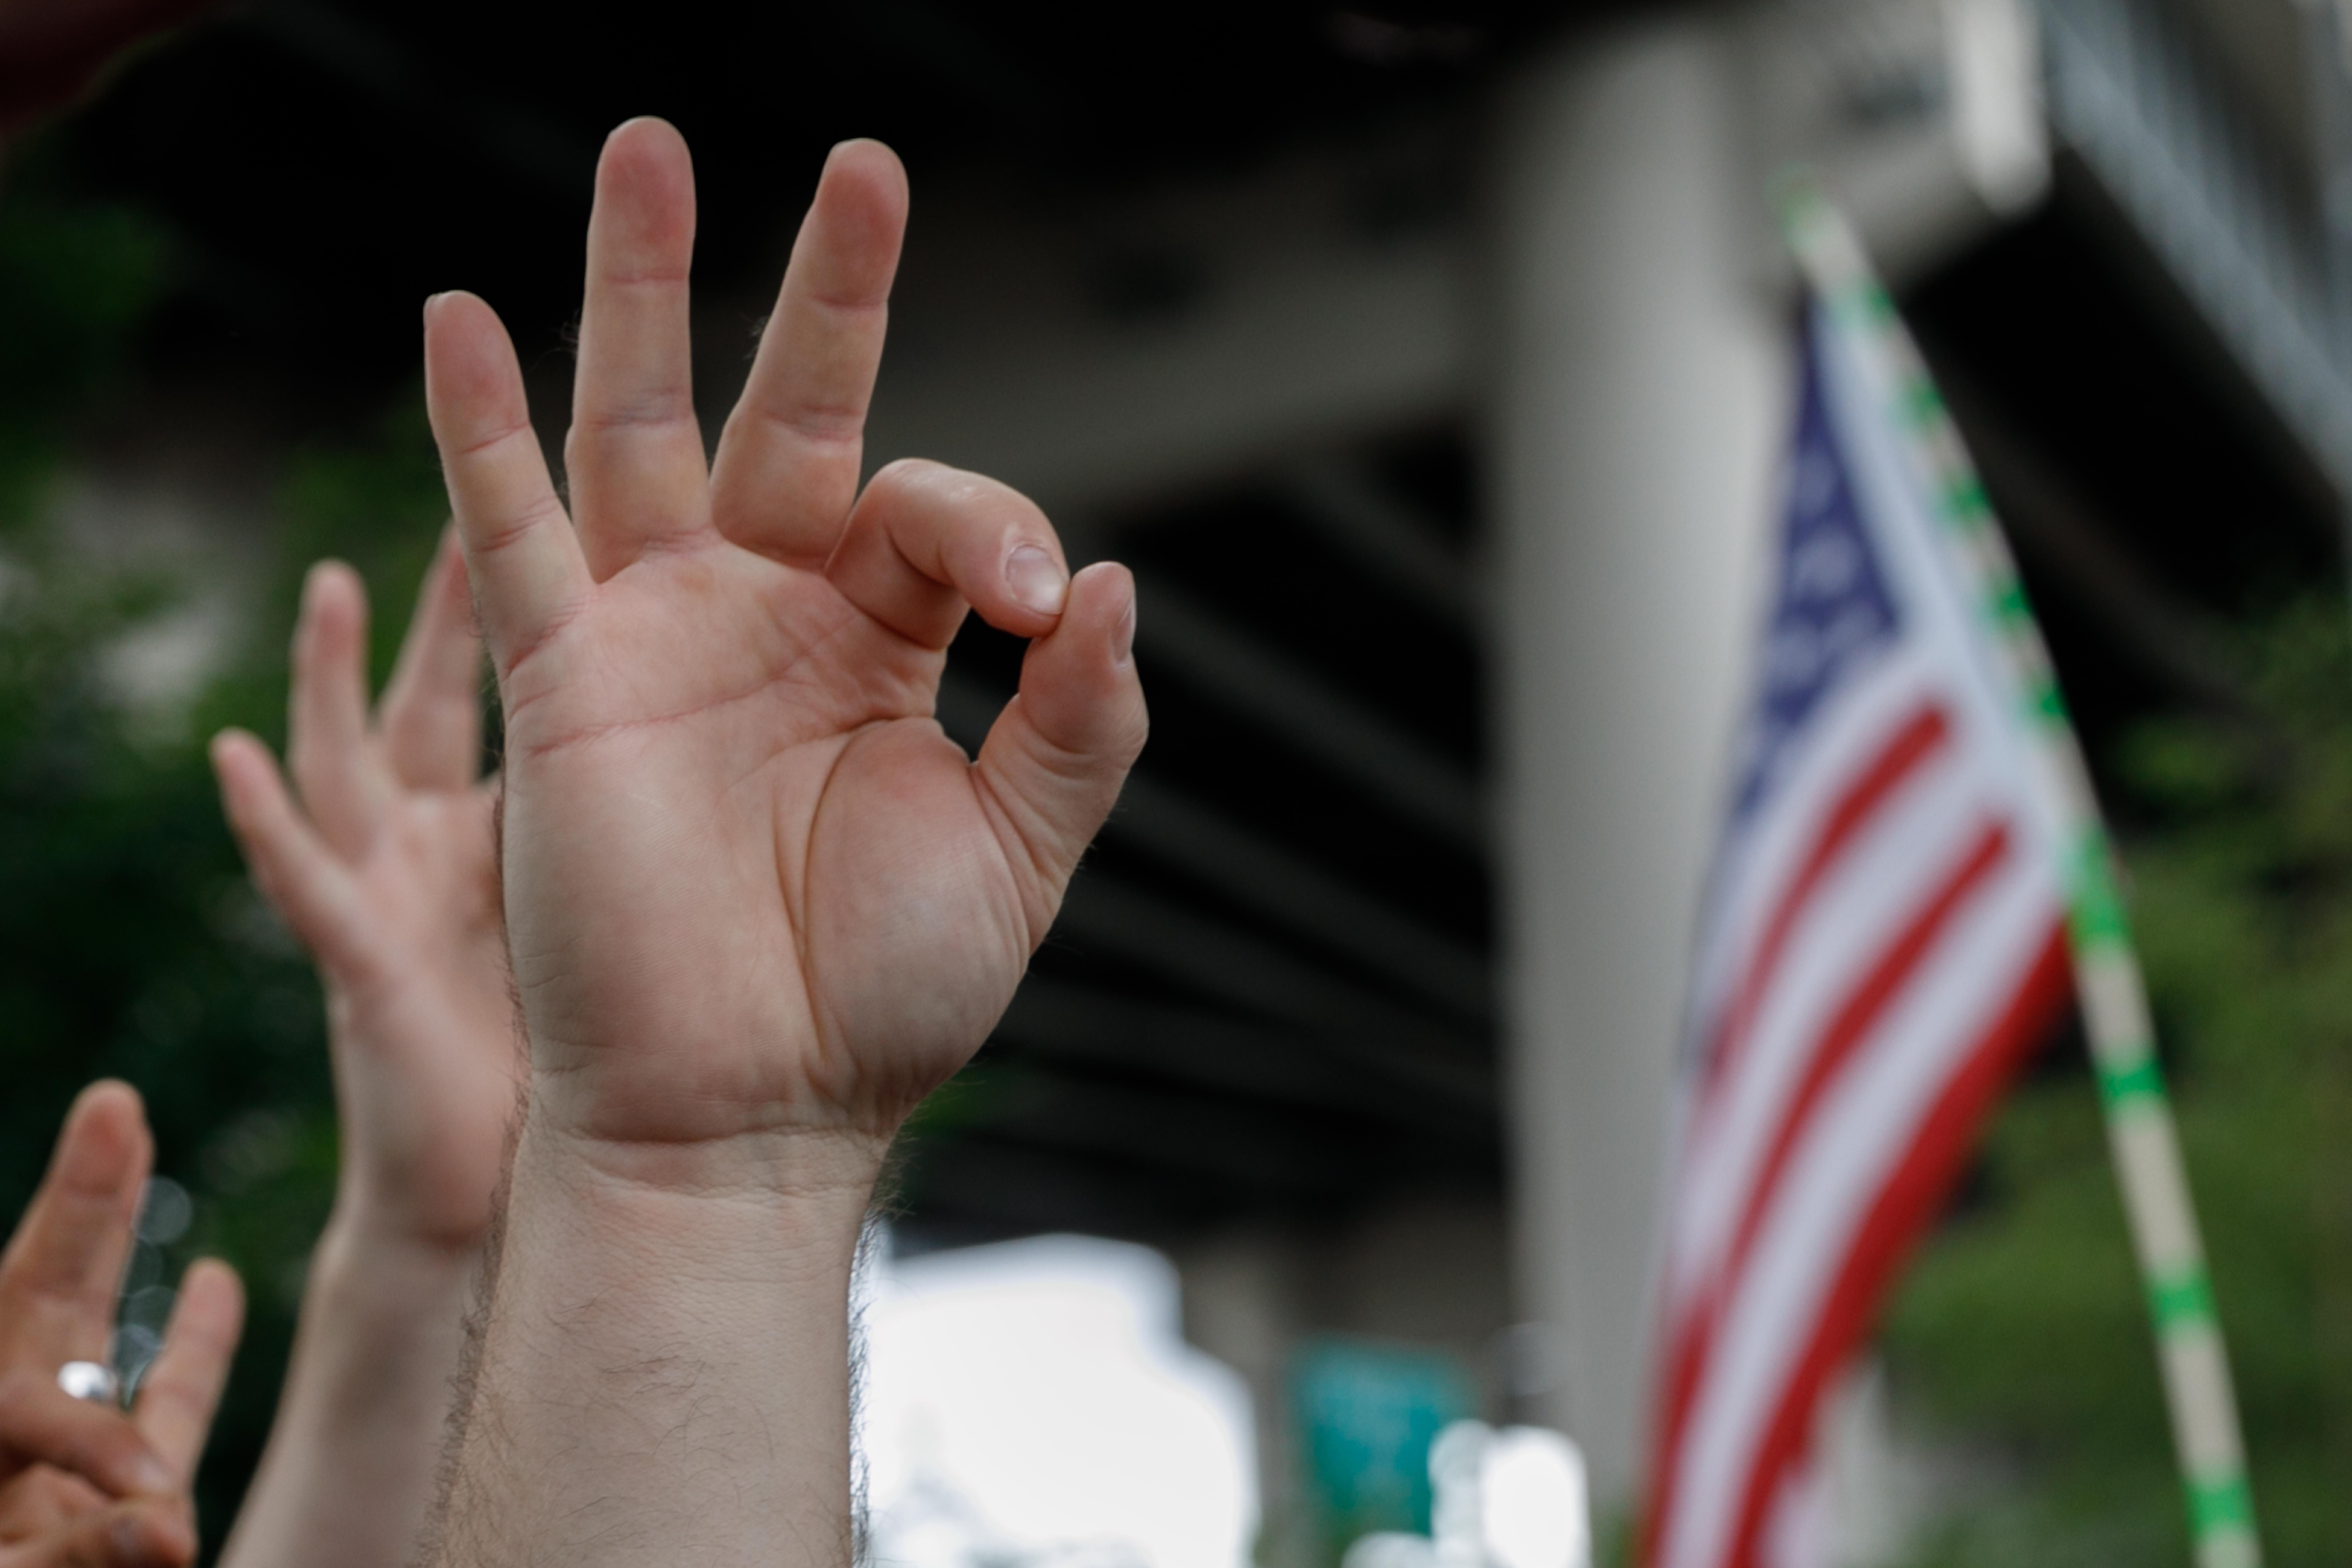 """A far-right demonstrator makes the OK hand gesture believed to have white supremacist connotations during """"The End Domestic Terrorism"""" rally at Tom McCall Waterfront Park on August 17, 2019 in Portland, Oregon. - No major incidents were reported on Saturday afternoon in Portland (western USA) during a far-right rally and far-left counter-demonstration, raising fears of violent clashes between local authorities and US President Donald Trump, who was monitoring the event """"very closely"""". (Photo by John Rudoff / AFP)        (Photo credit should read JOHN RUDOFF/AFP/Getty Images)"""